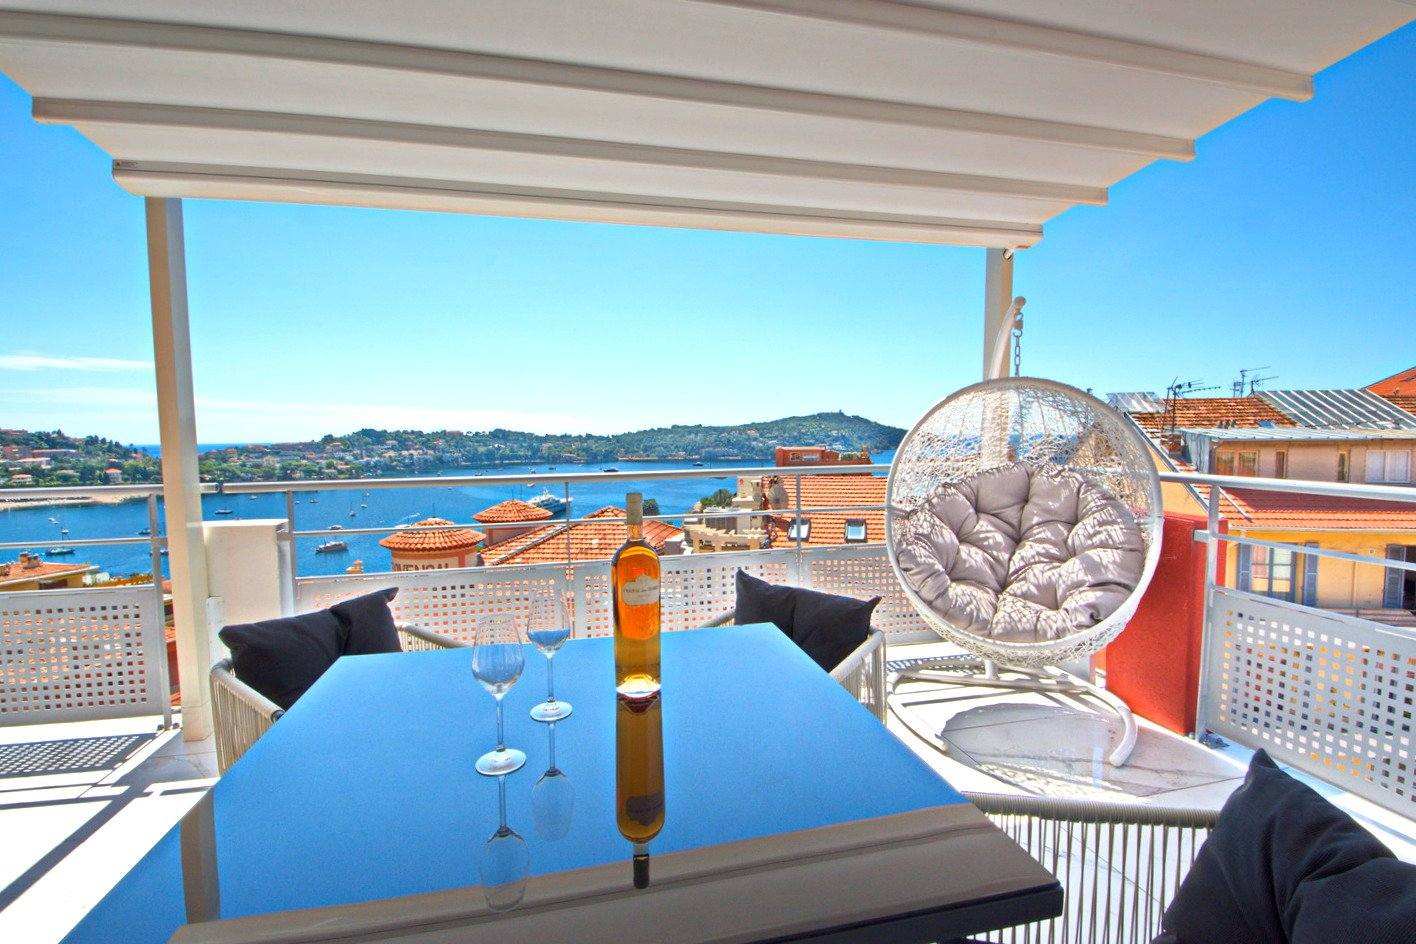 SALE Penthouse Apartment Villefranche-sur-Mer Terrace 50m² Sea Views